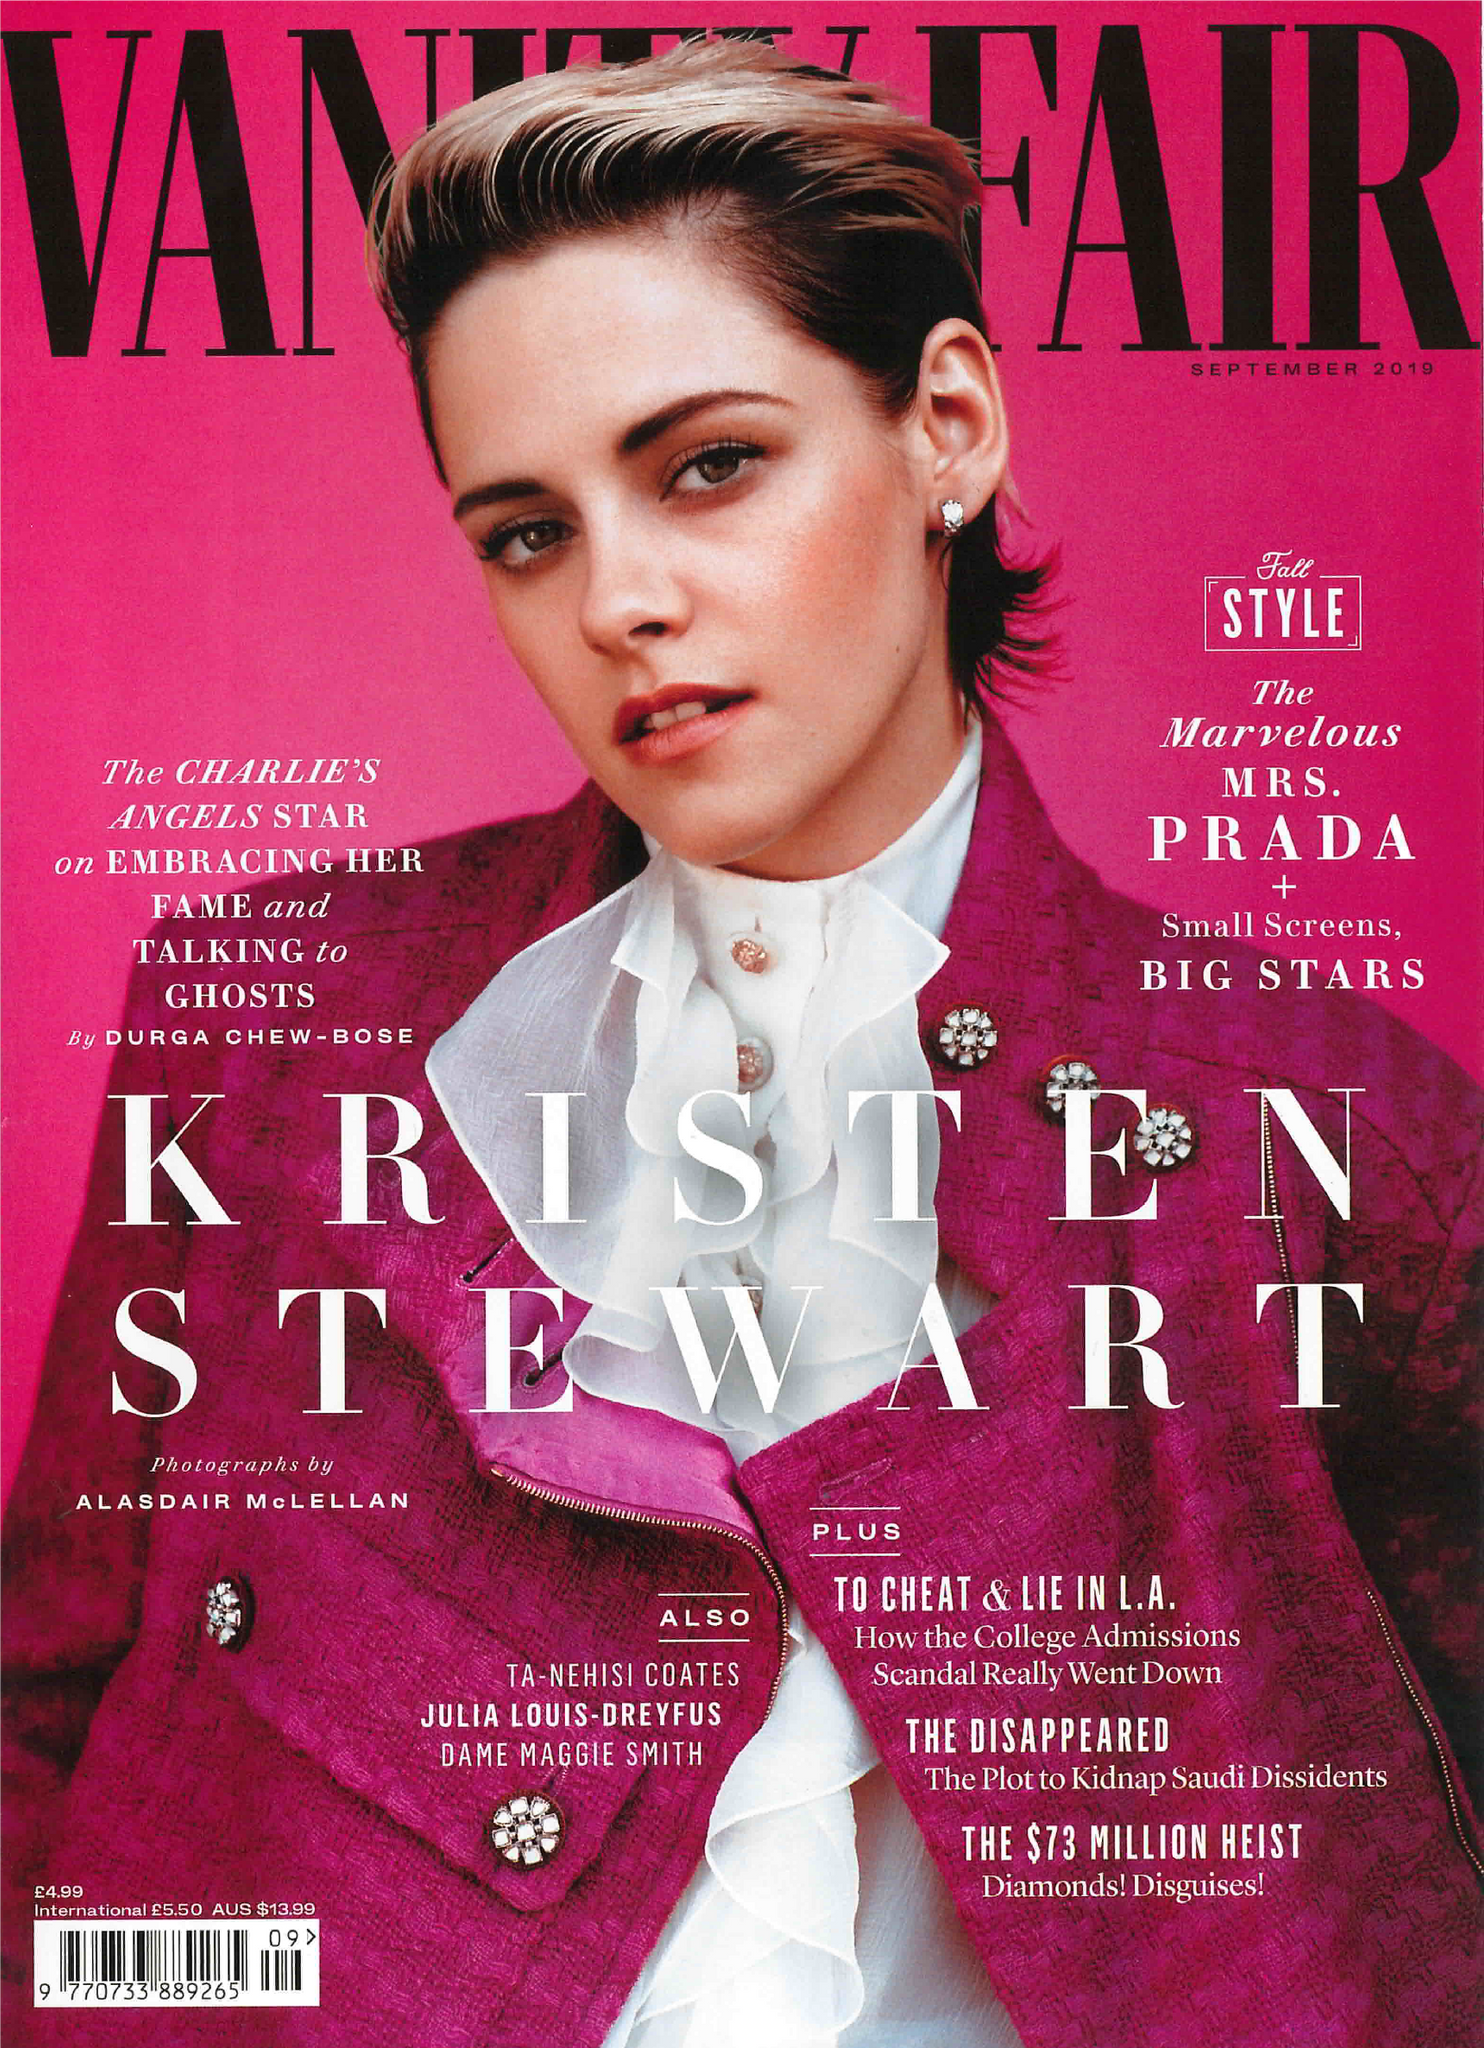 Terry Schiefer in VANITY FAIR Magazine September 2019